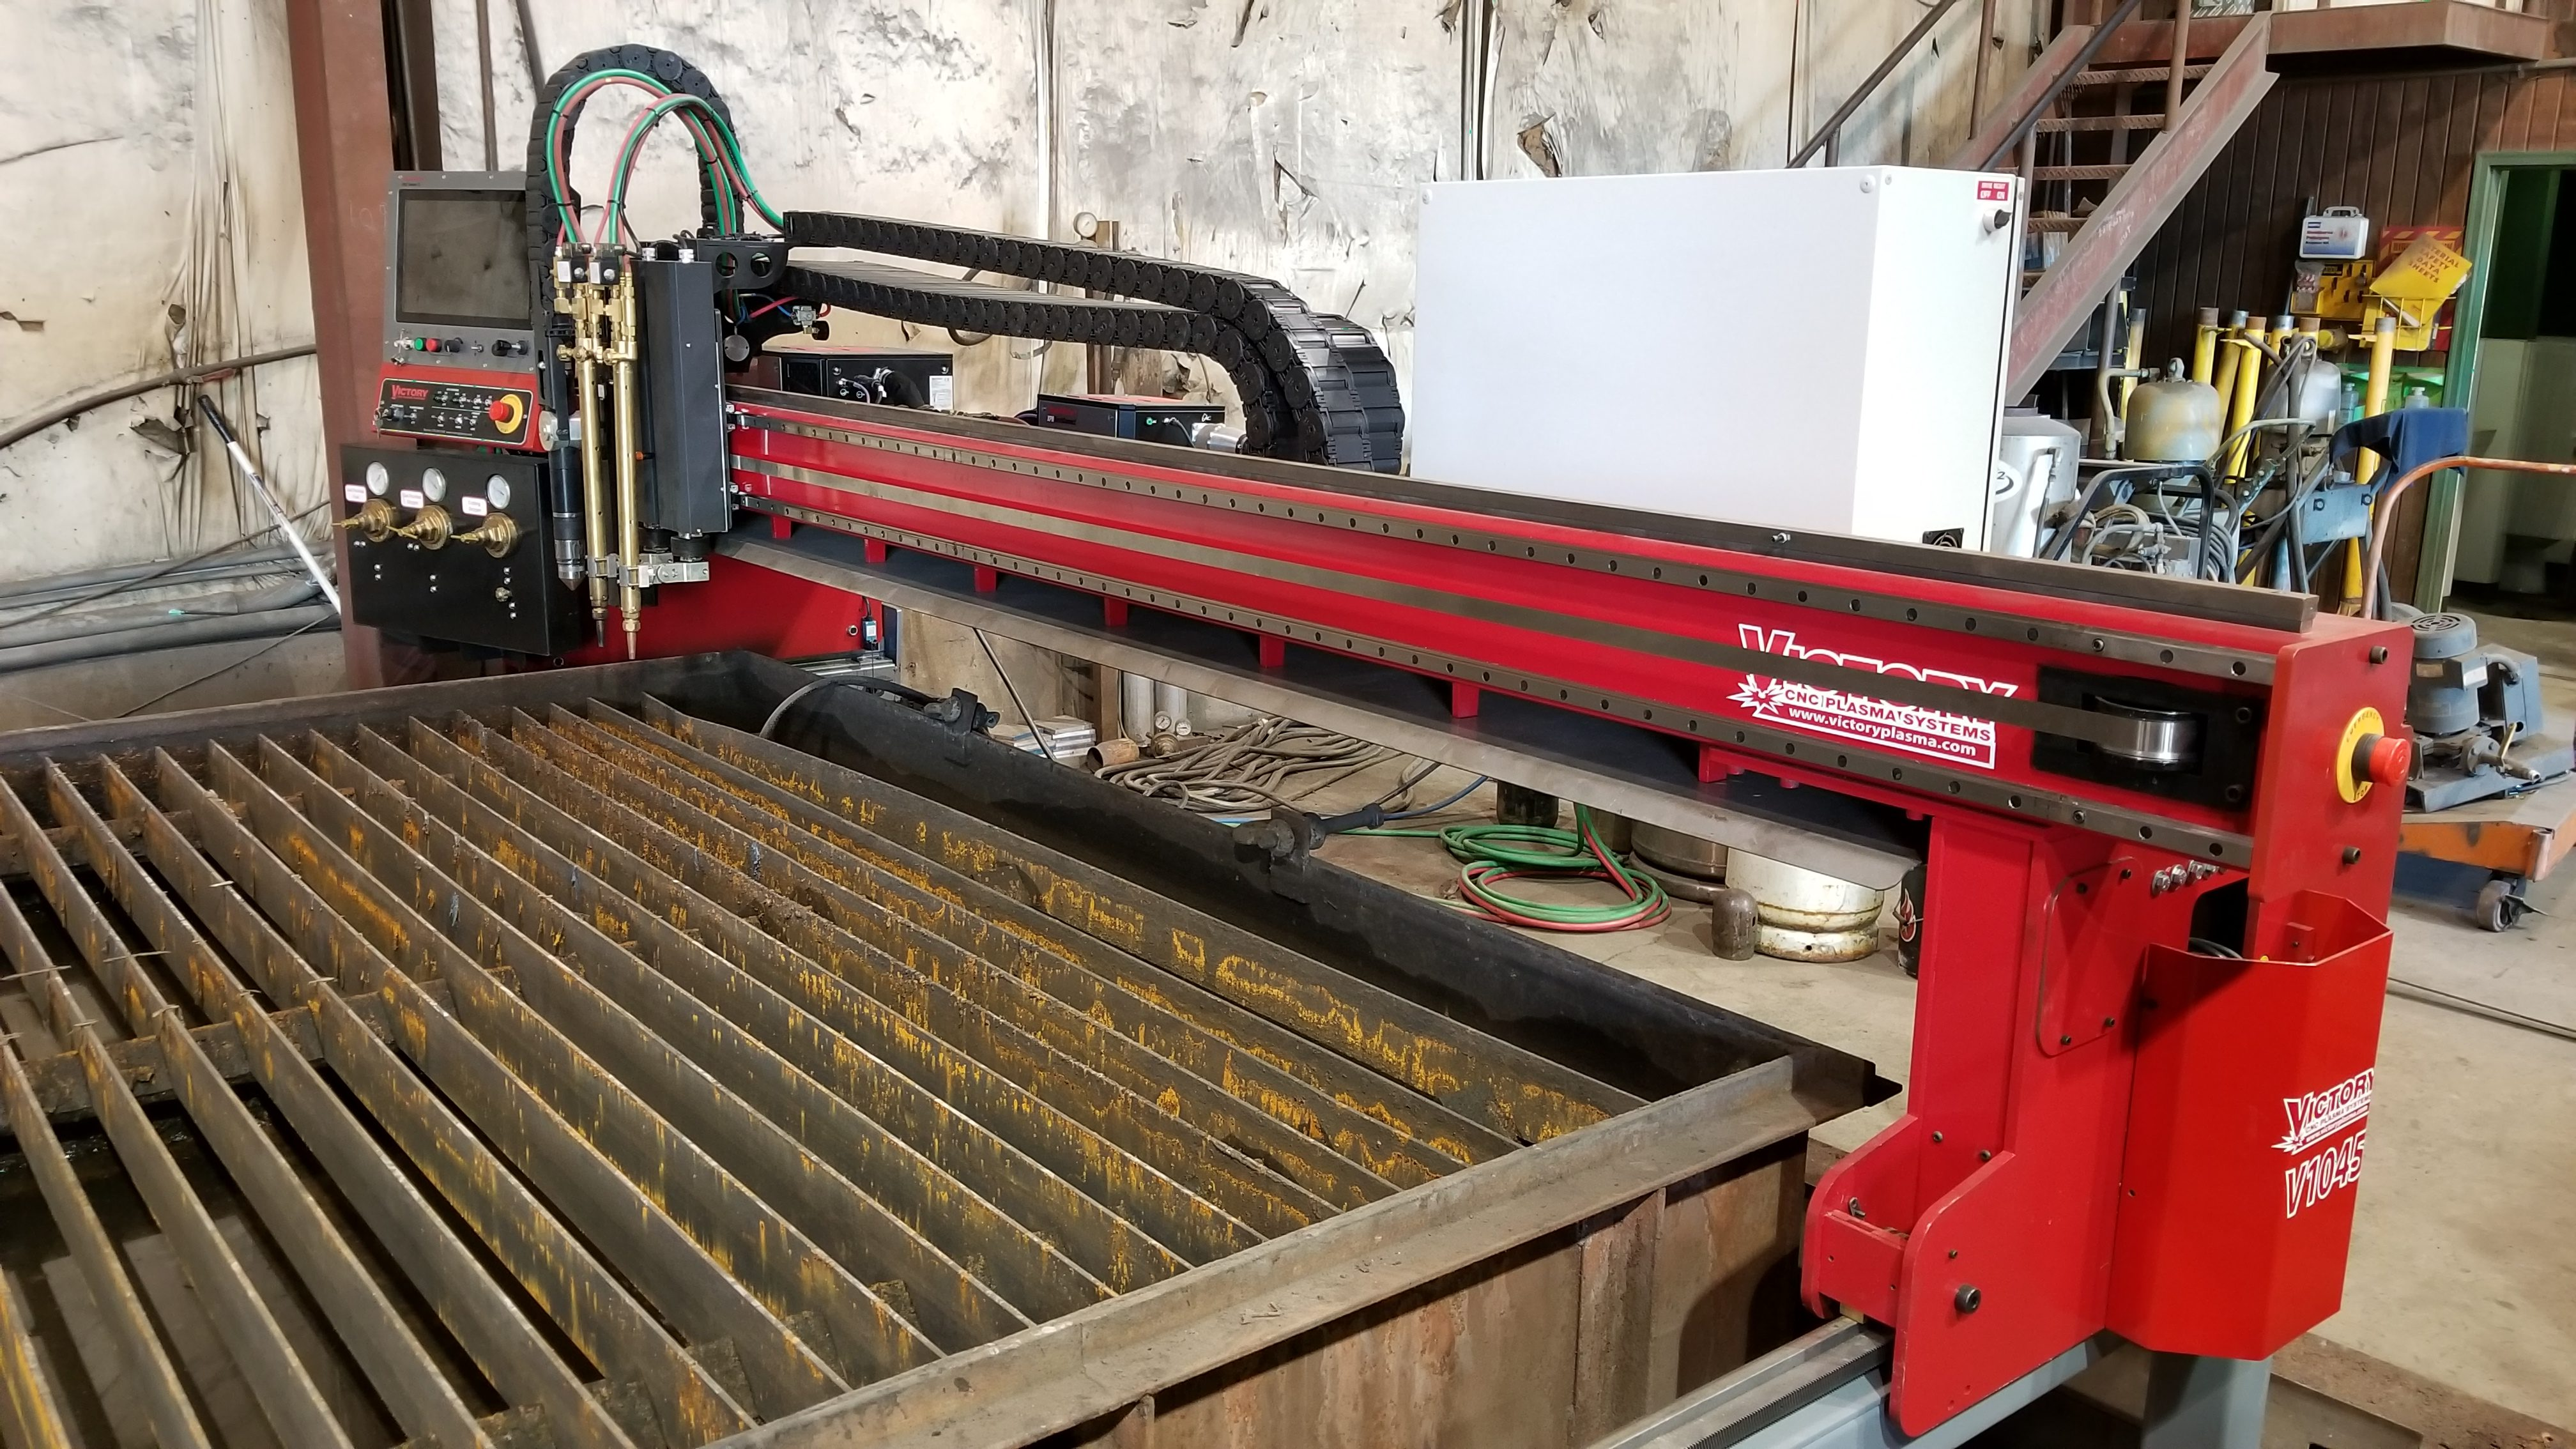 Victory CNC Plasma Systems 5'x10' Hypertherm EDGE Connect with XPR300 & dual oxy-fuel torches